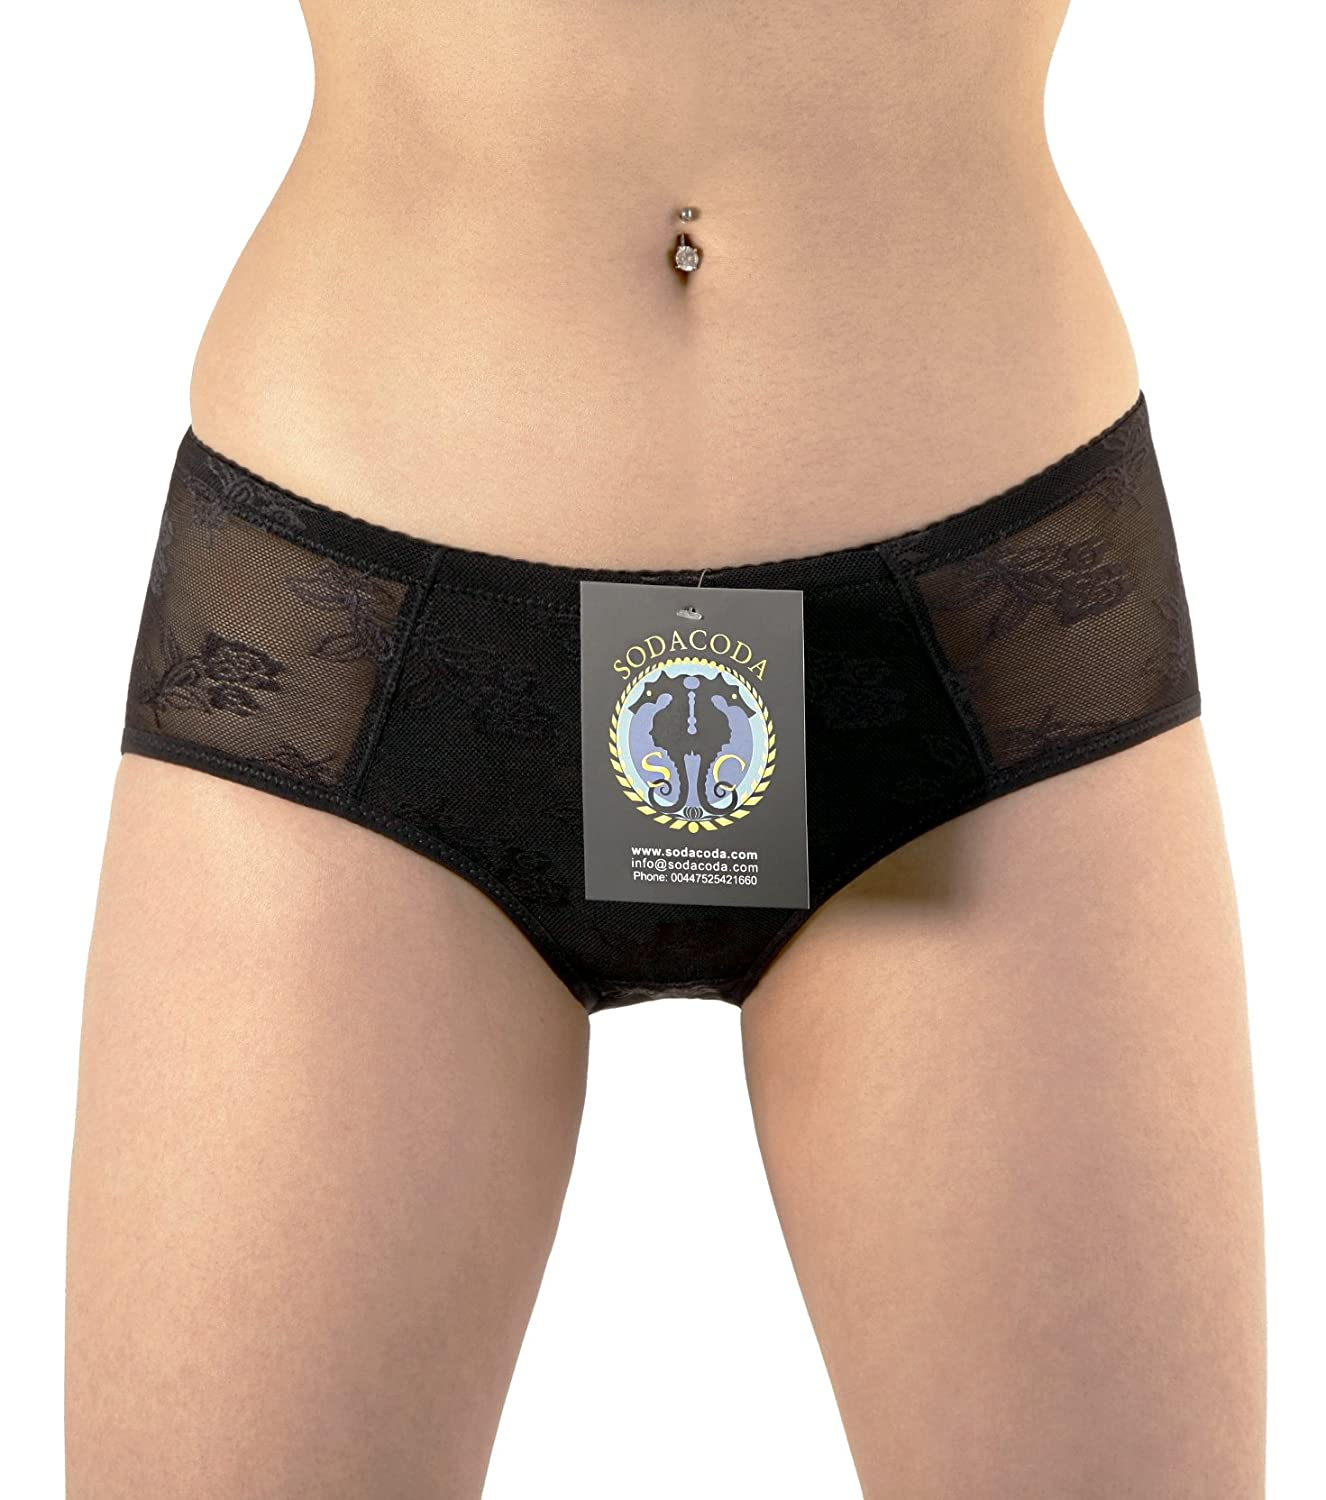 SodaCoda Foam Padded Butt Buttocks Lace Pants Brief - Extra Lowrise Style in Nude Or Black